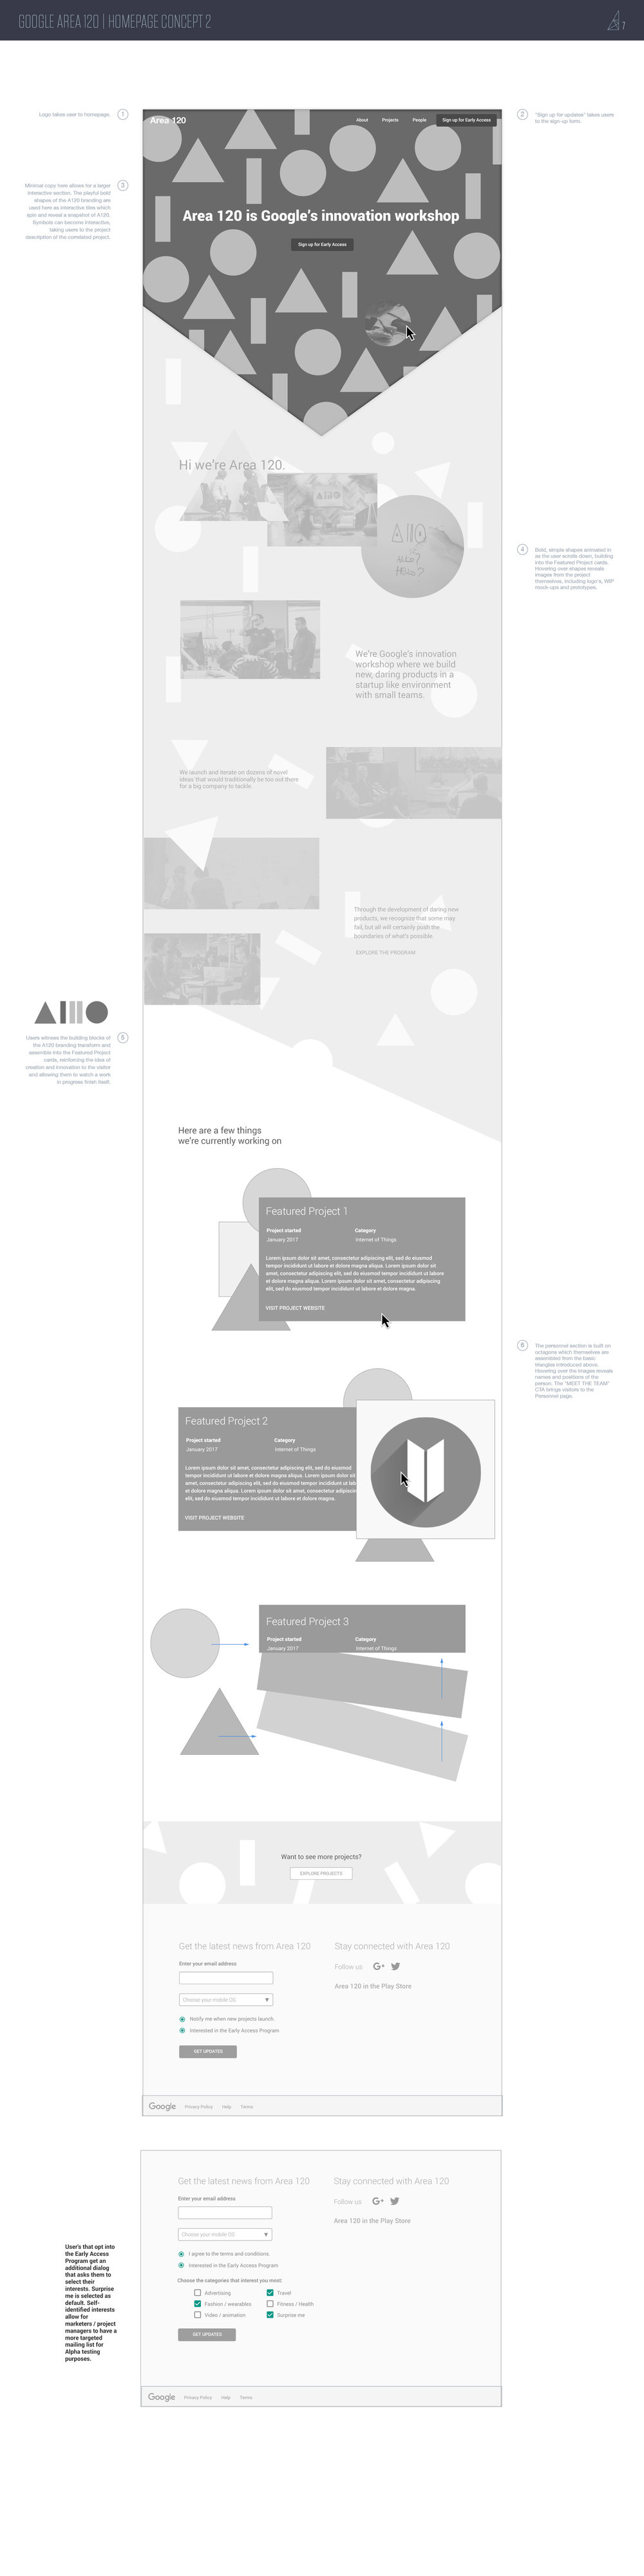 Area120_Wireframes_UX_103116-5.jpg